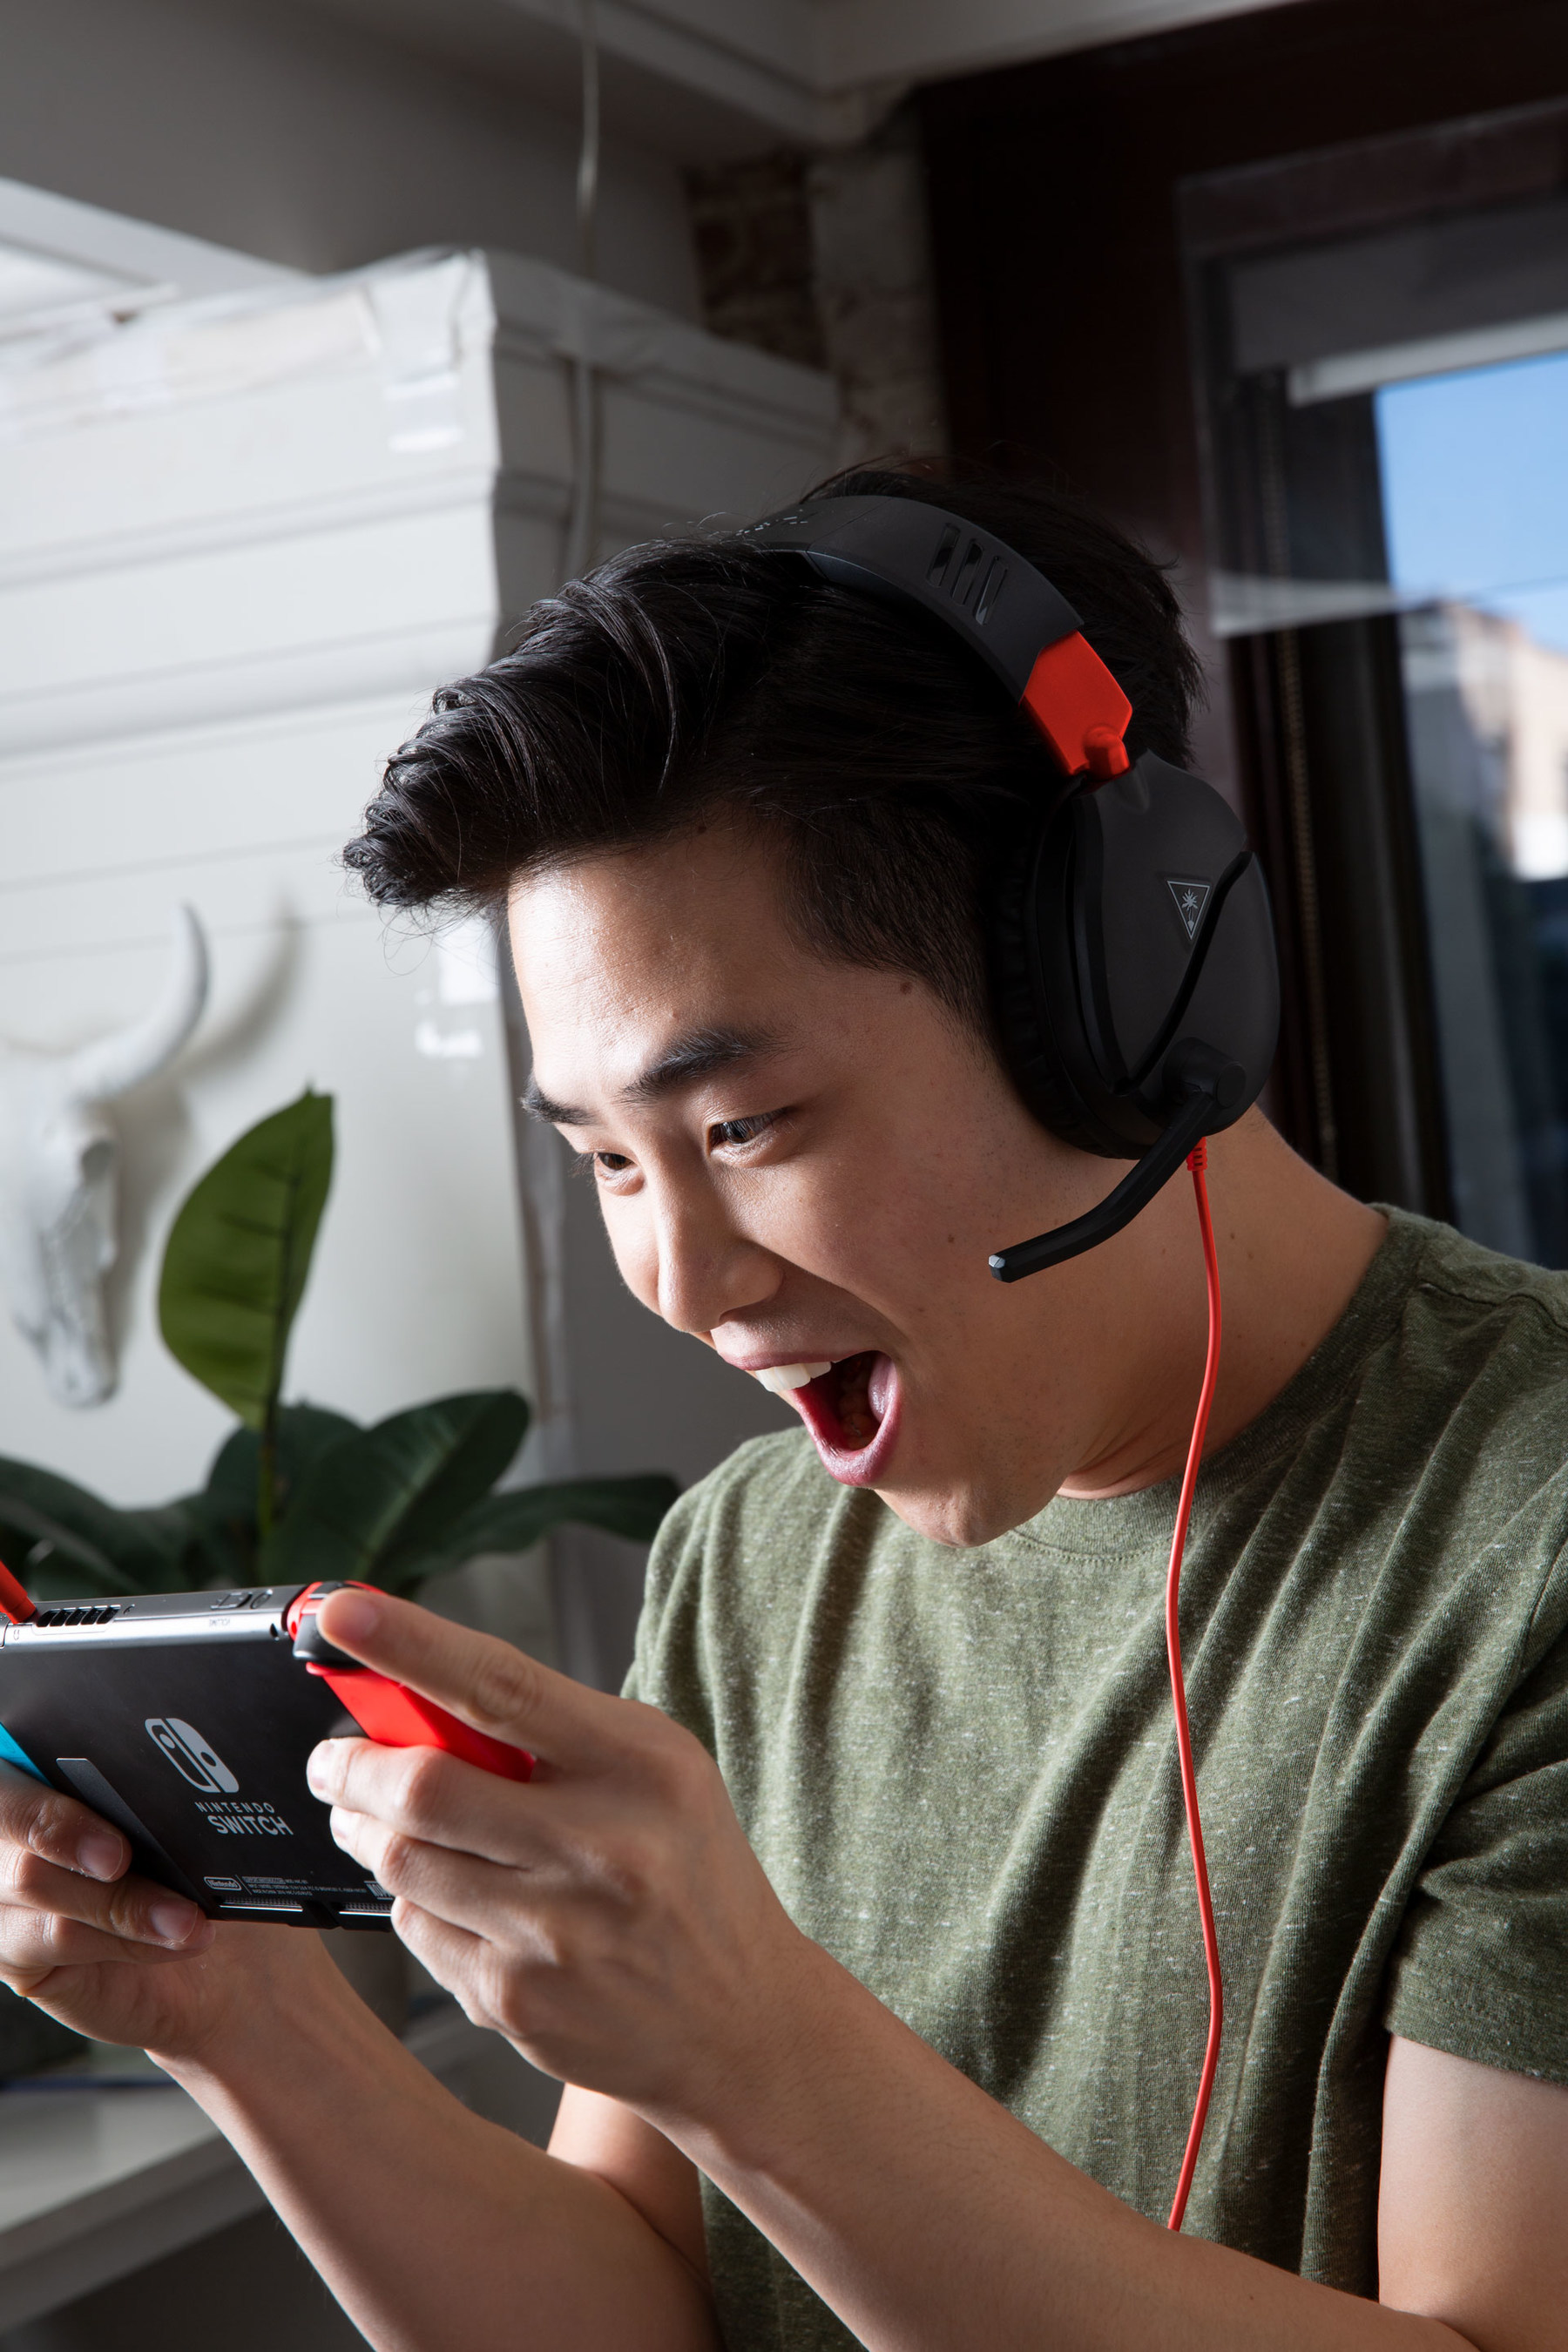 The all-new Turtle Beach Recon 70 is now available for the Nintendo Switch and coming to Xbox and PS4 on May 1, 2019. The successor to the #1 selling wired headset is built for victories across every genre and platform.